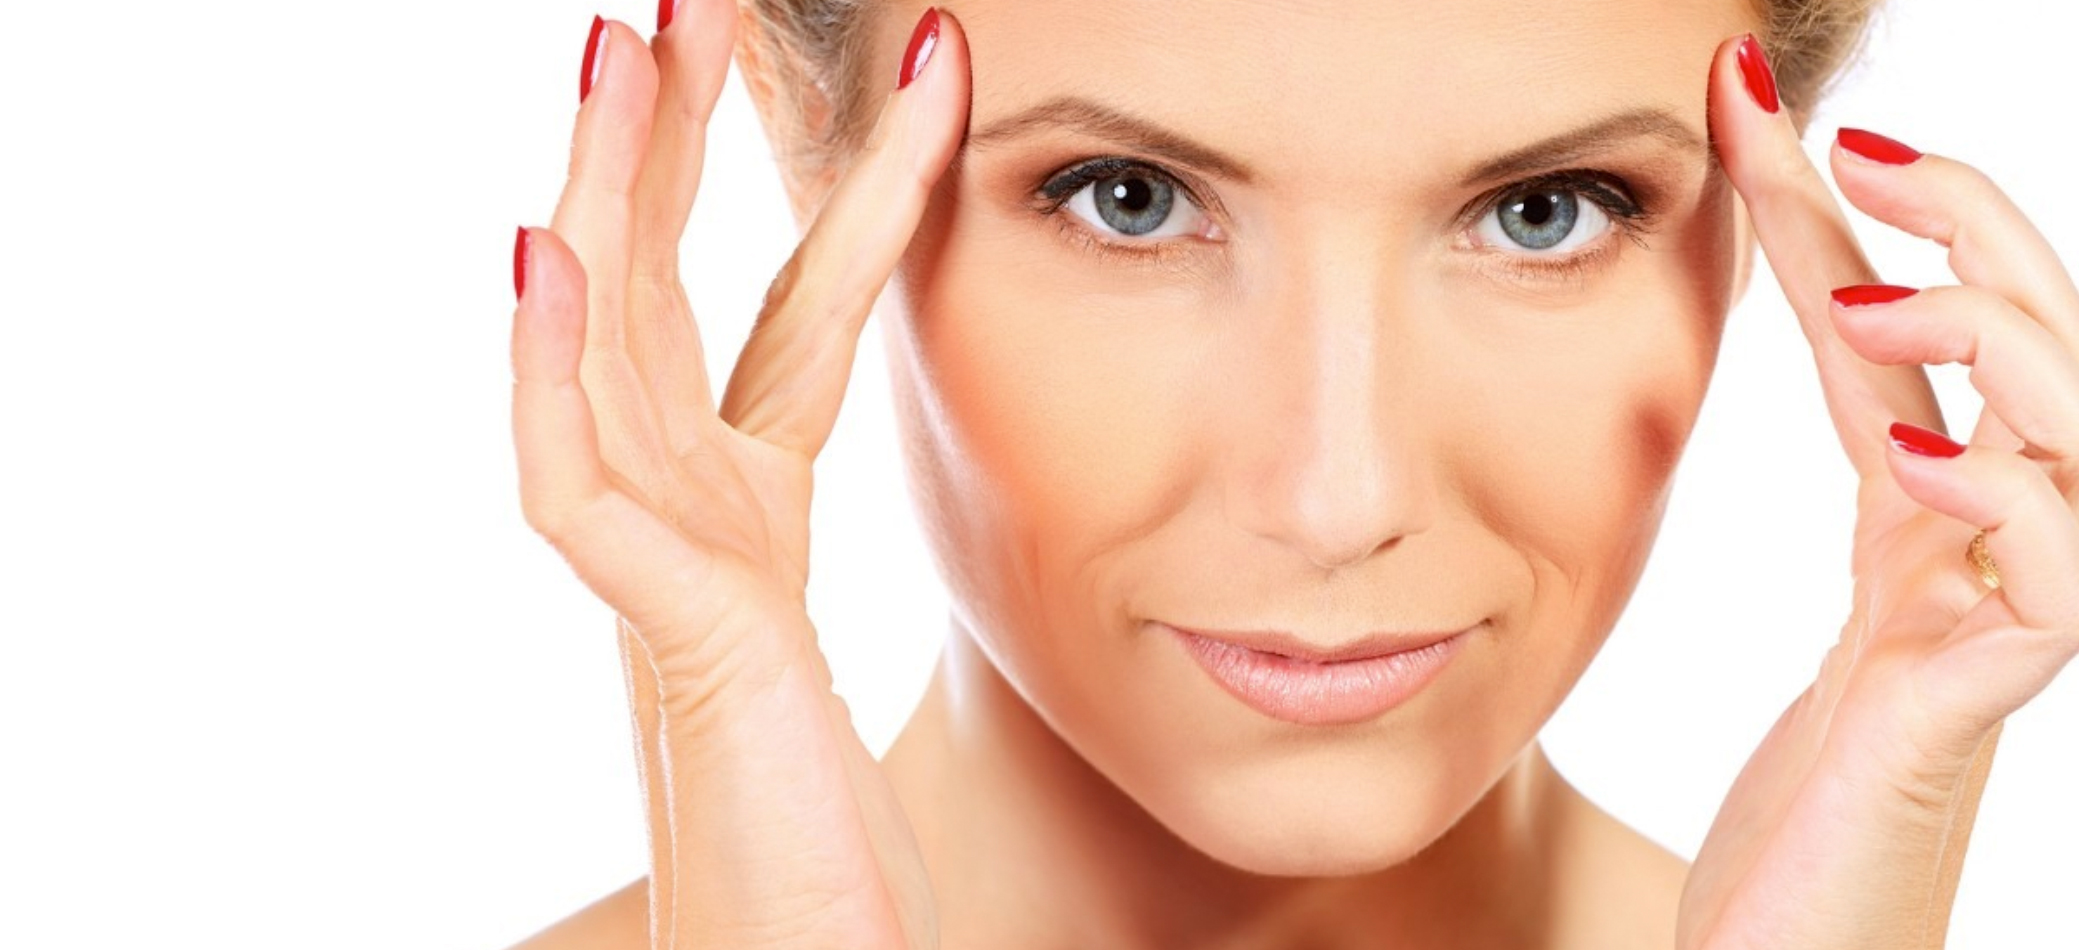 skin-tightening-versus-facelift